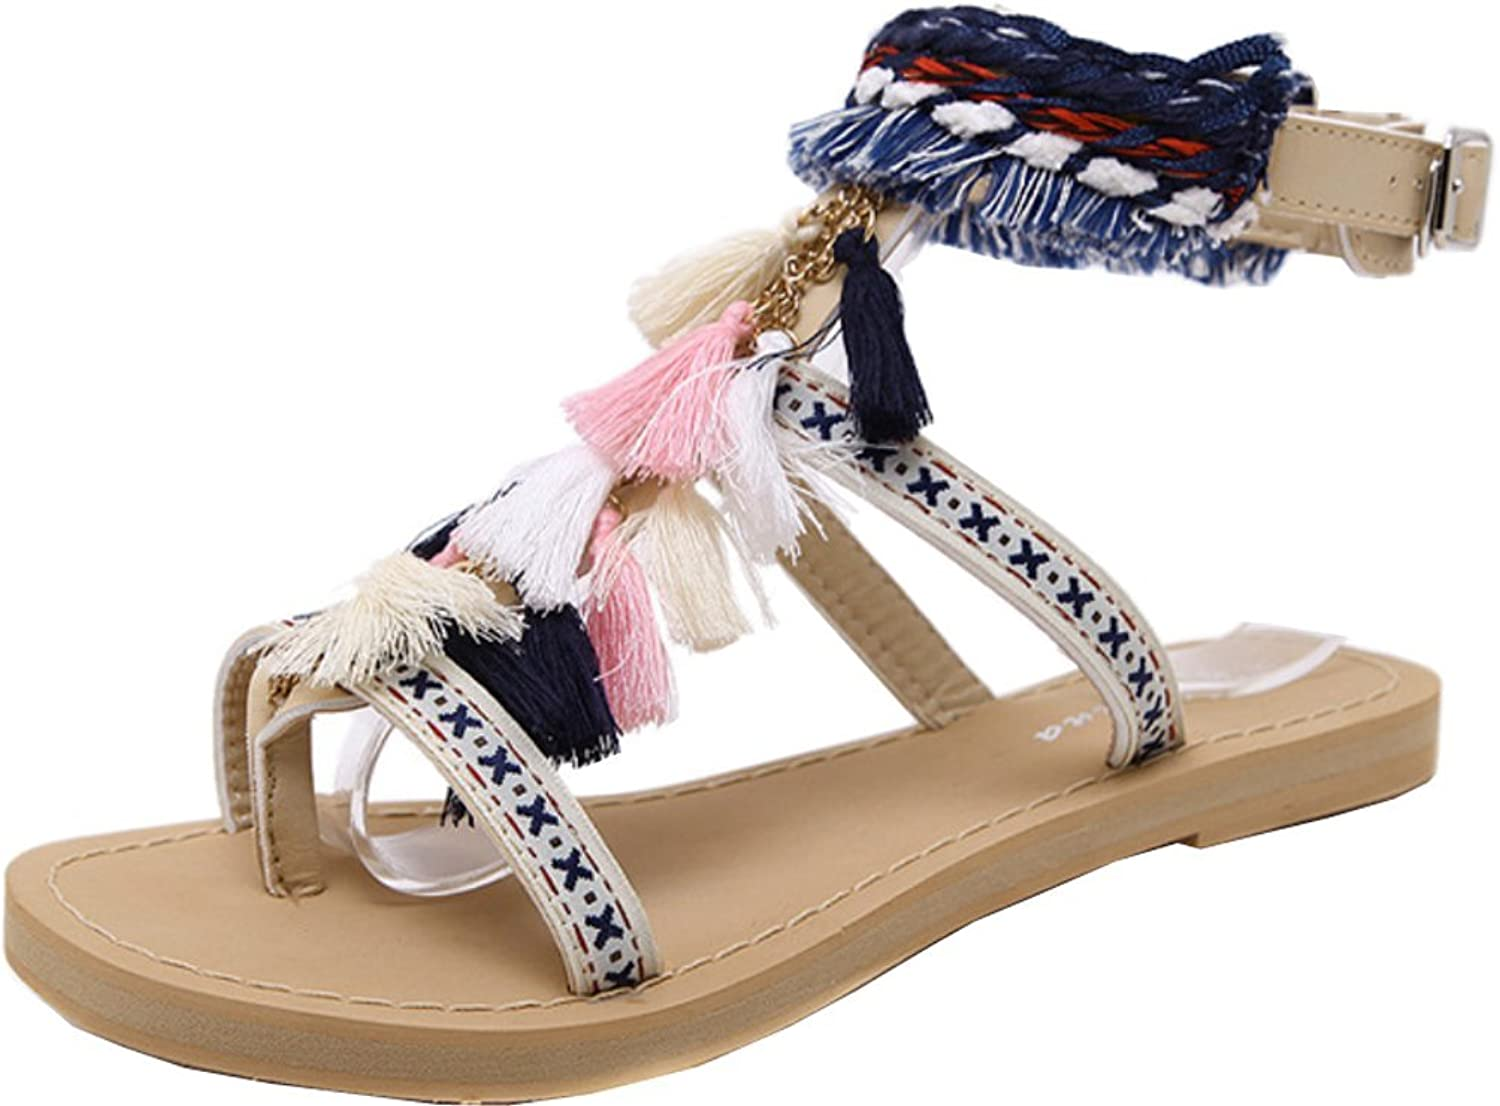 Abby 219 Womens Fashion Comfort Character Retro Ethnic Work Job Casual Flat Flip Flops Ankle Straps PU Sandals